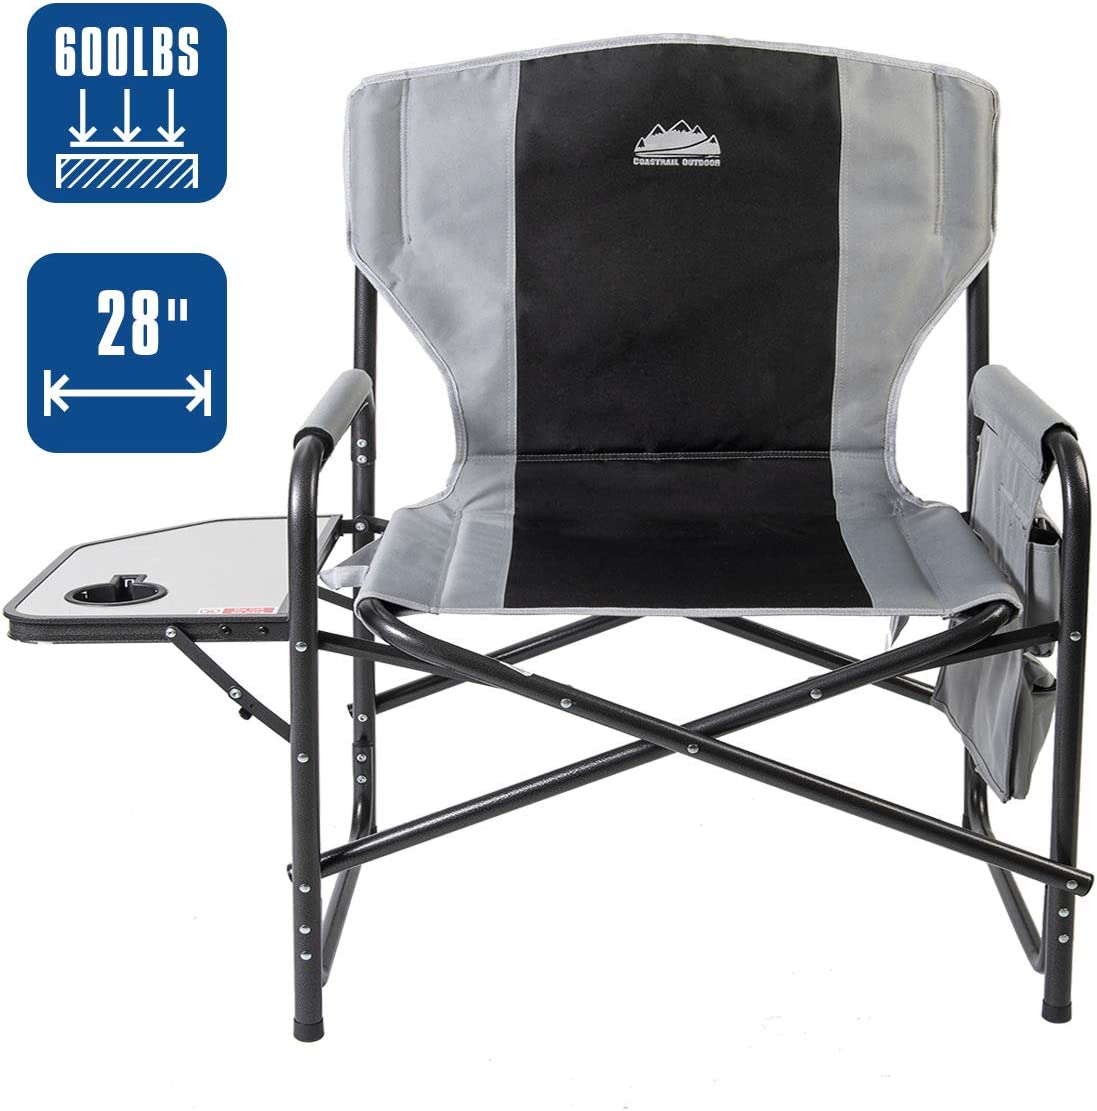 Coastrail Outdoor Oversized Director Chair 600lbs, 28 Wide, XXL Full Back Padded Camp Chair with Table Storage, Heavy Duty for Camping, Patio, Lawn